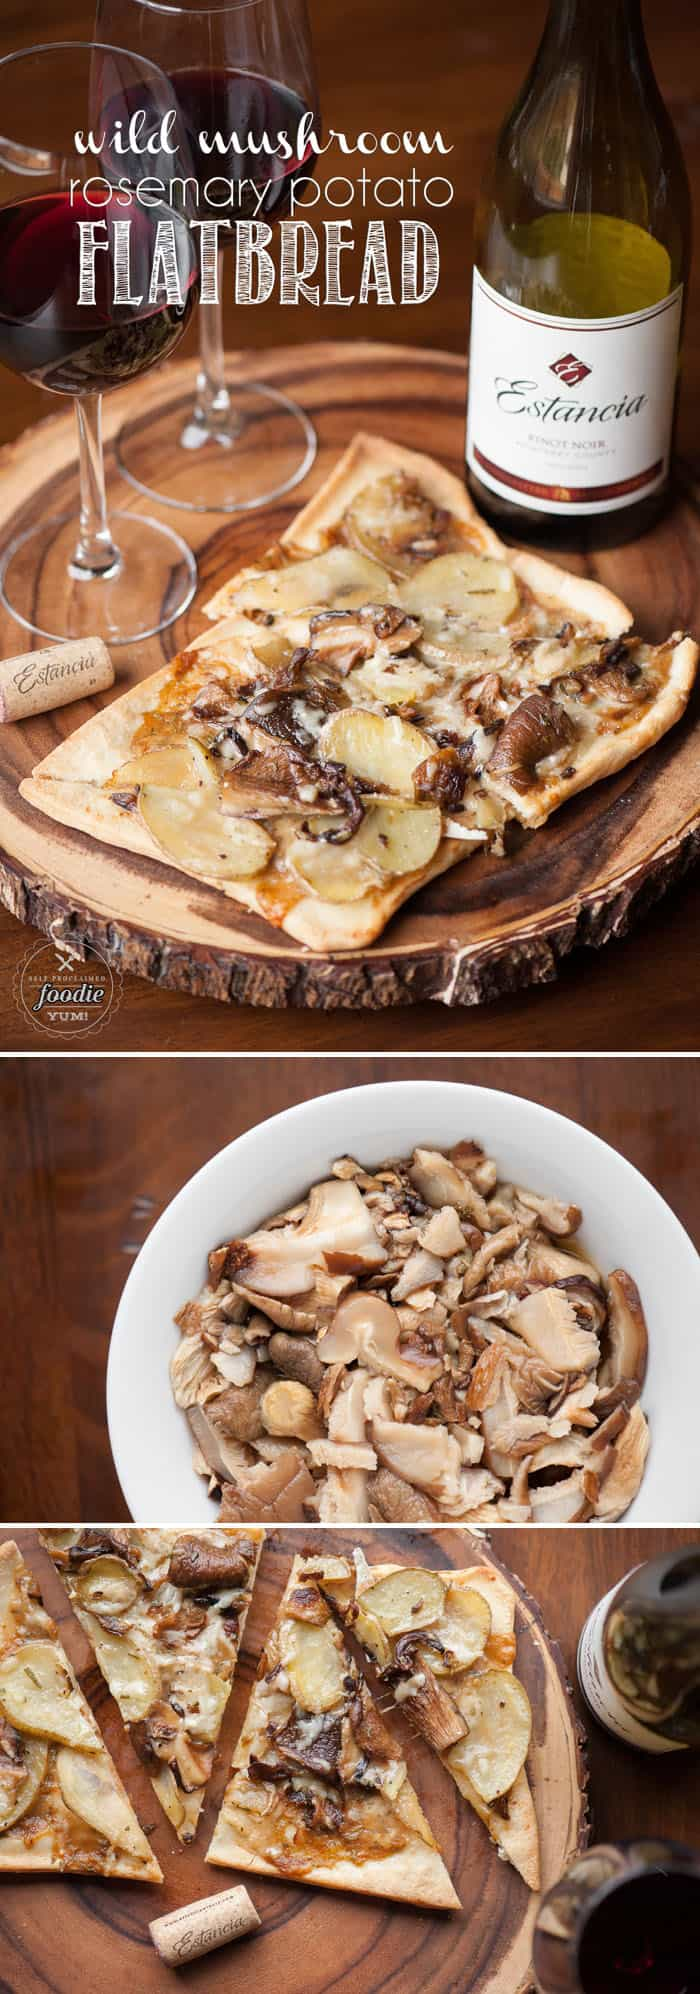 Discover the art of entertaining by pairing a bold Pinot Noir with a delicious Wild Mushroom Rosemary Potato Flatbread appetizer.